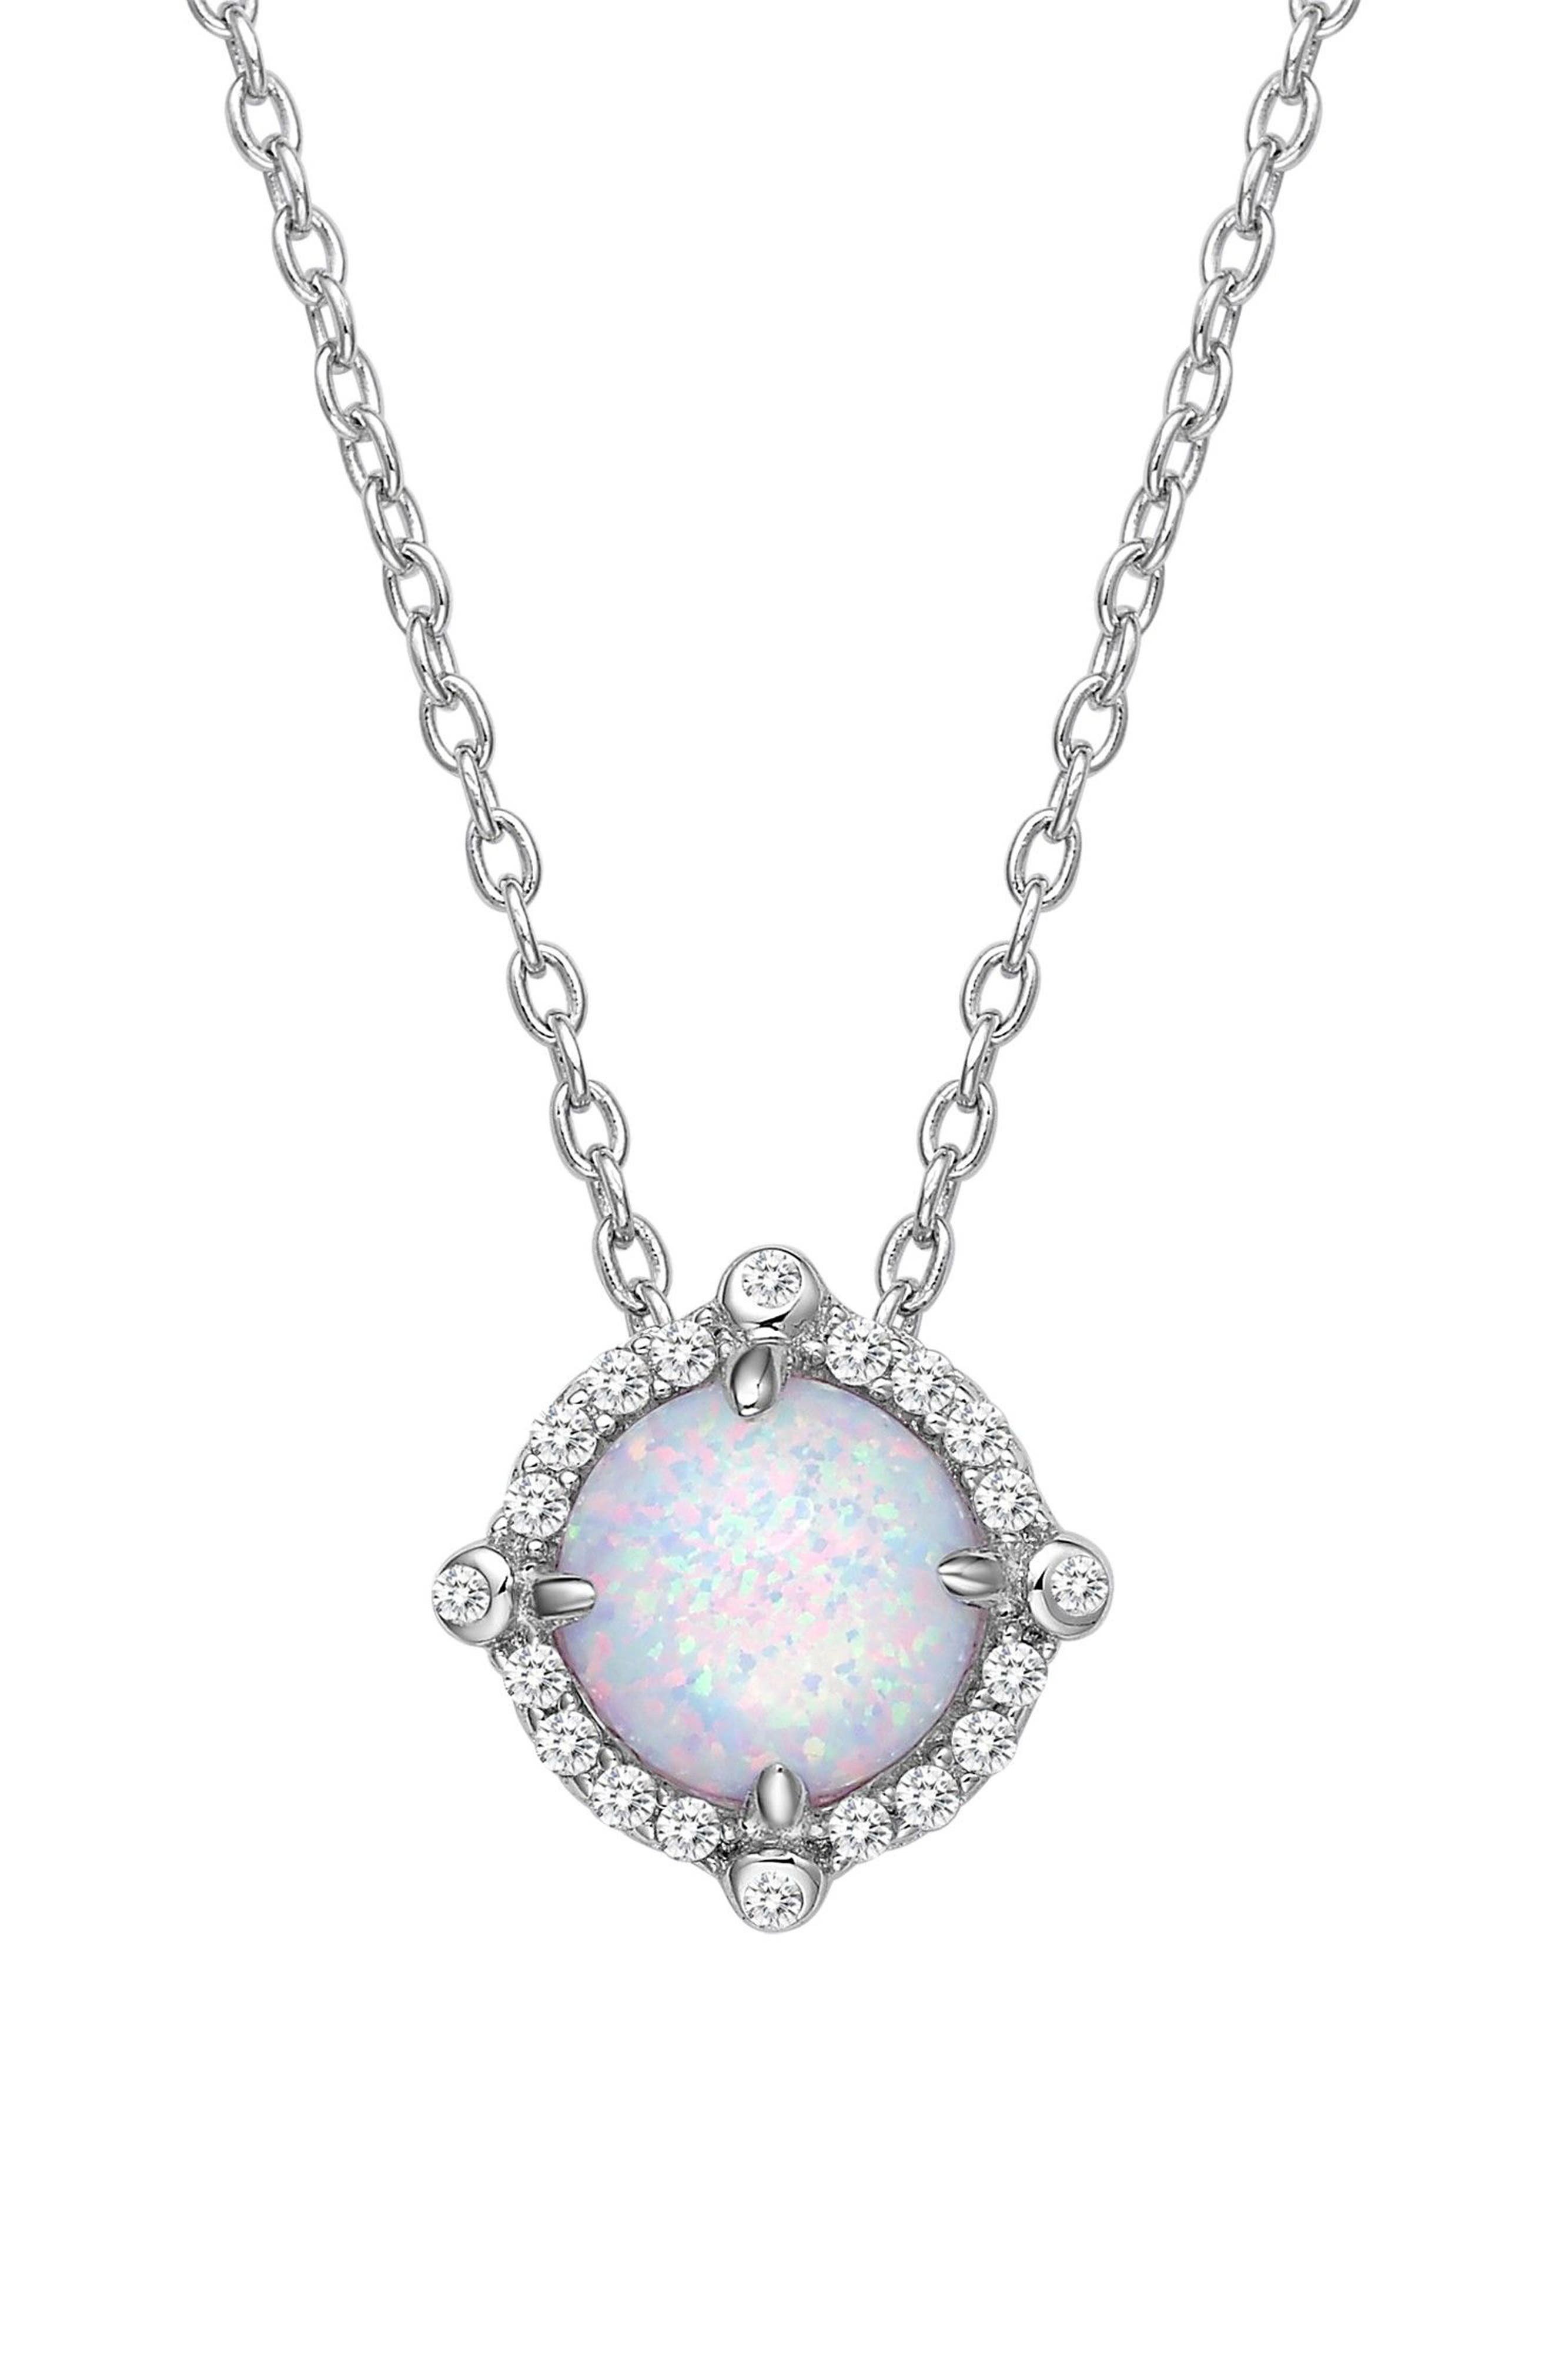 Simulated Diamond & Opal Necklace,                             Alternate thumbnail 3, color,                             Silver/ Opal/ Clear